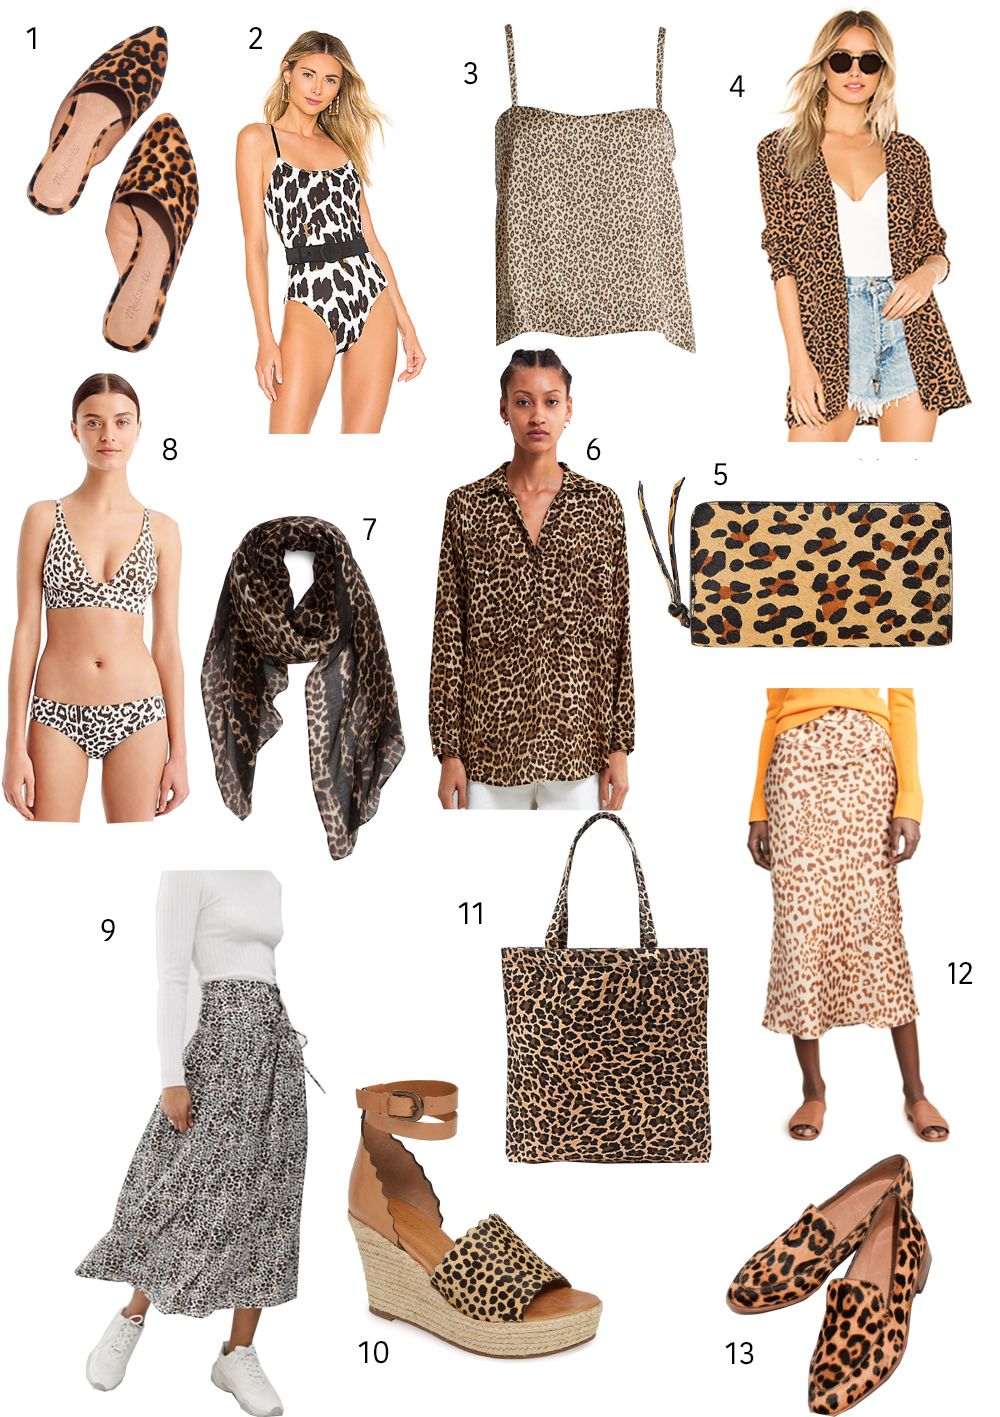 9805aa56ec8b Leopard Mules | 2. Belted One Piece Swimsuit | 3. Strappy Camisole | 4.  Leopard Print Blazer | 5. Leather Card Wallet | 6. Animal Print Shirt | 7.